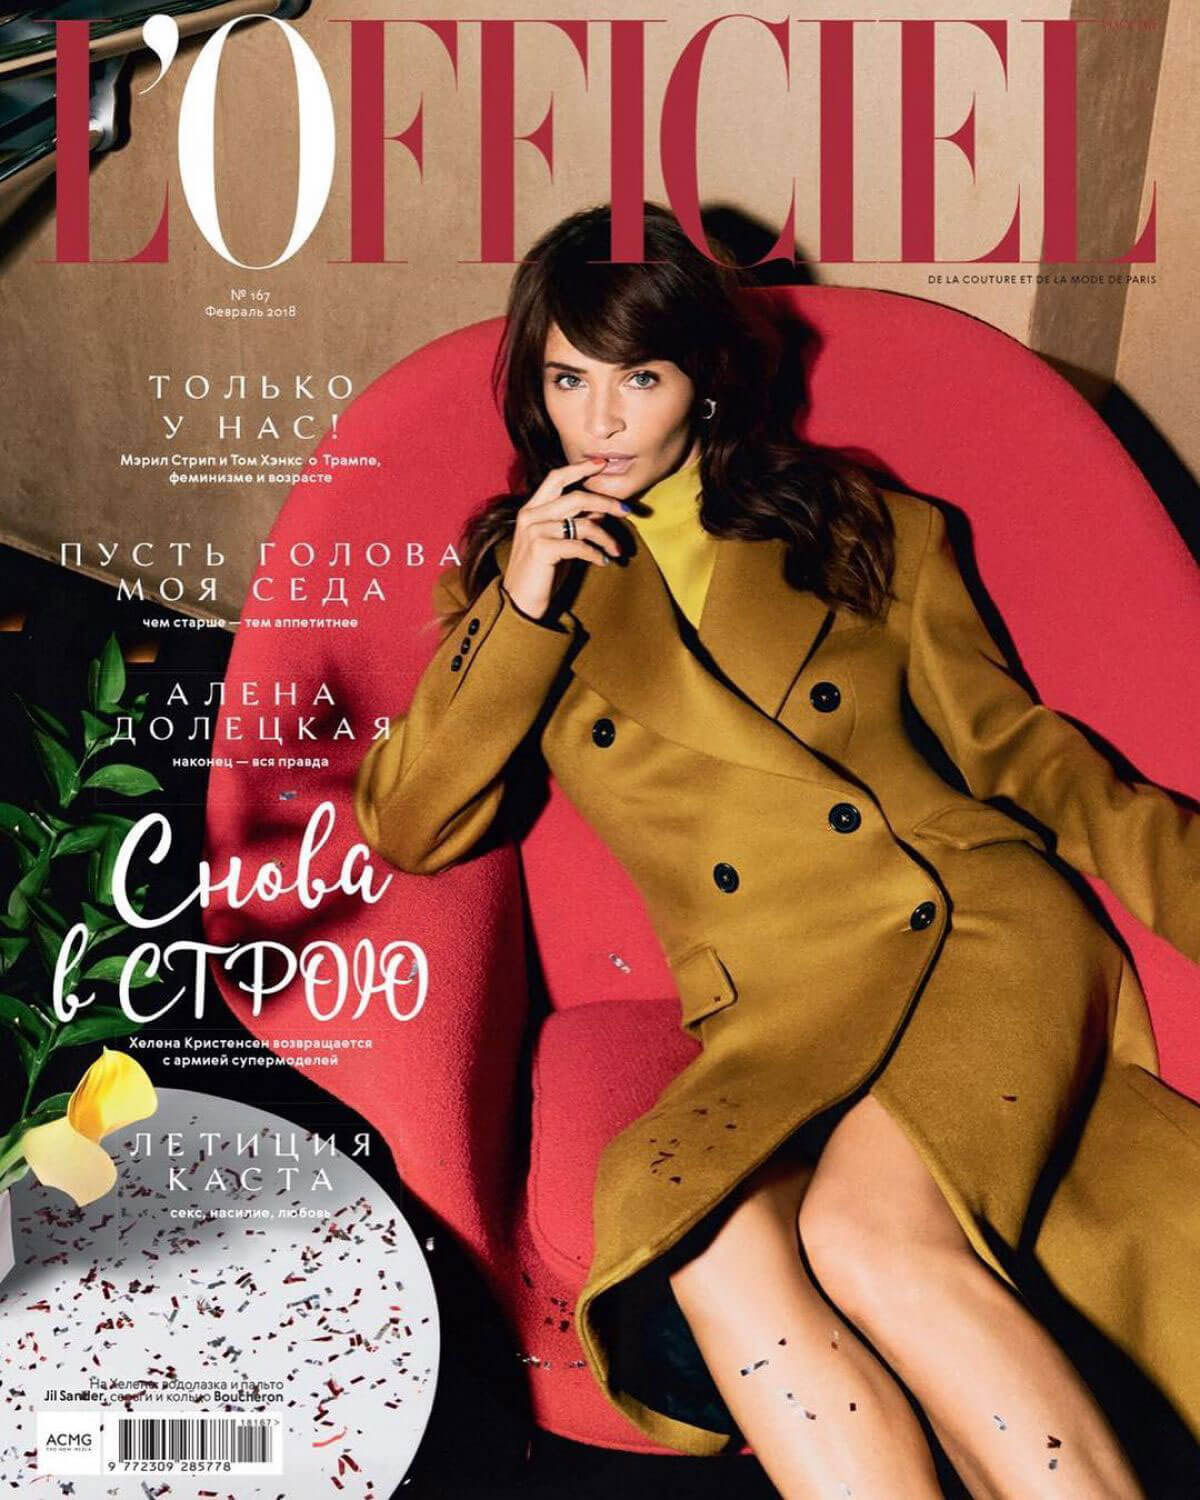 Helena Christensen Poses for L'Officiel Magazine, Russia February 2018 Issue